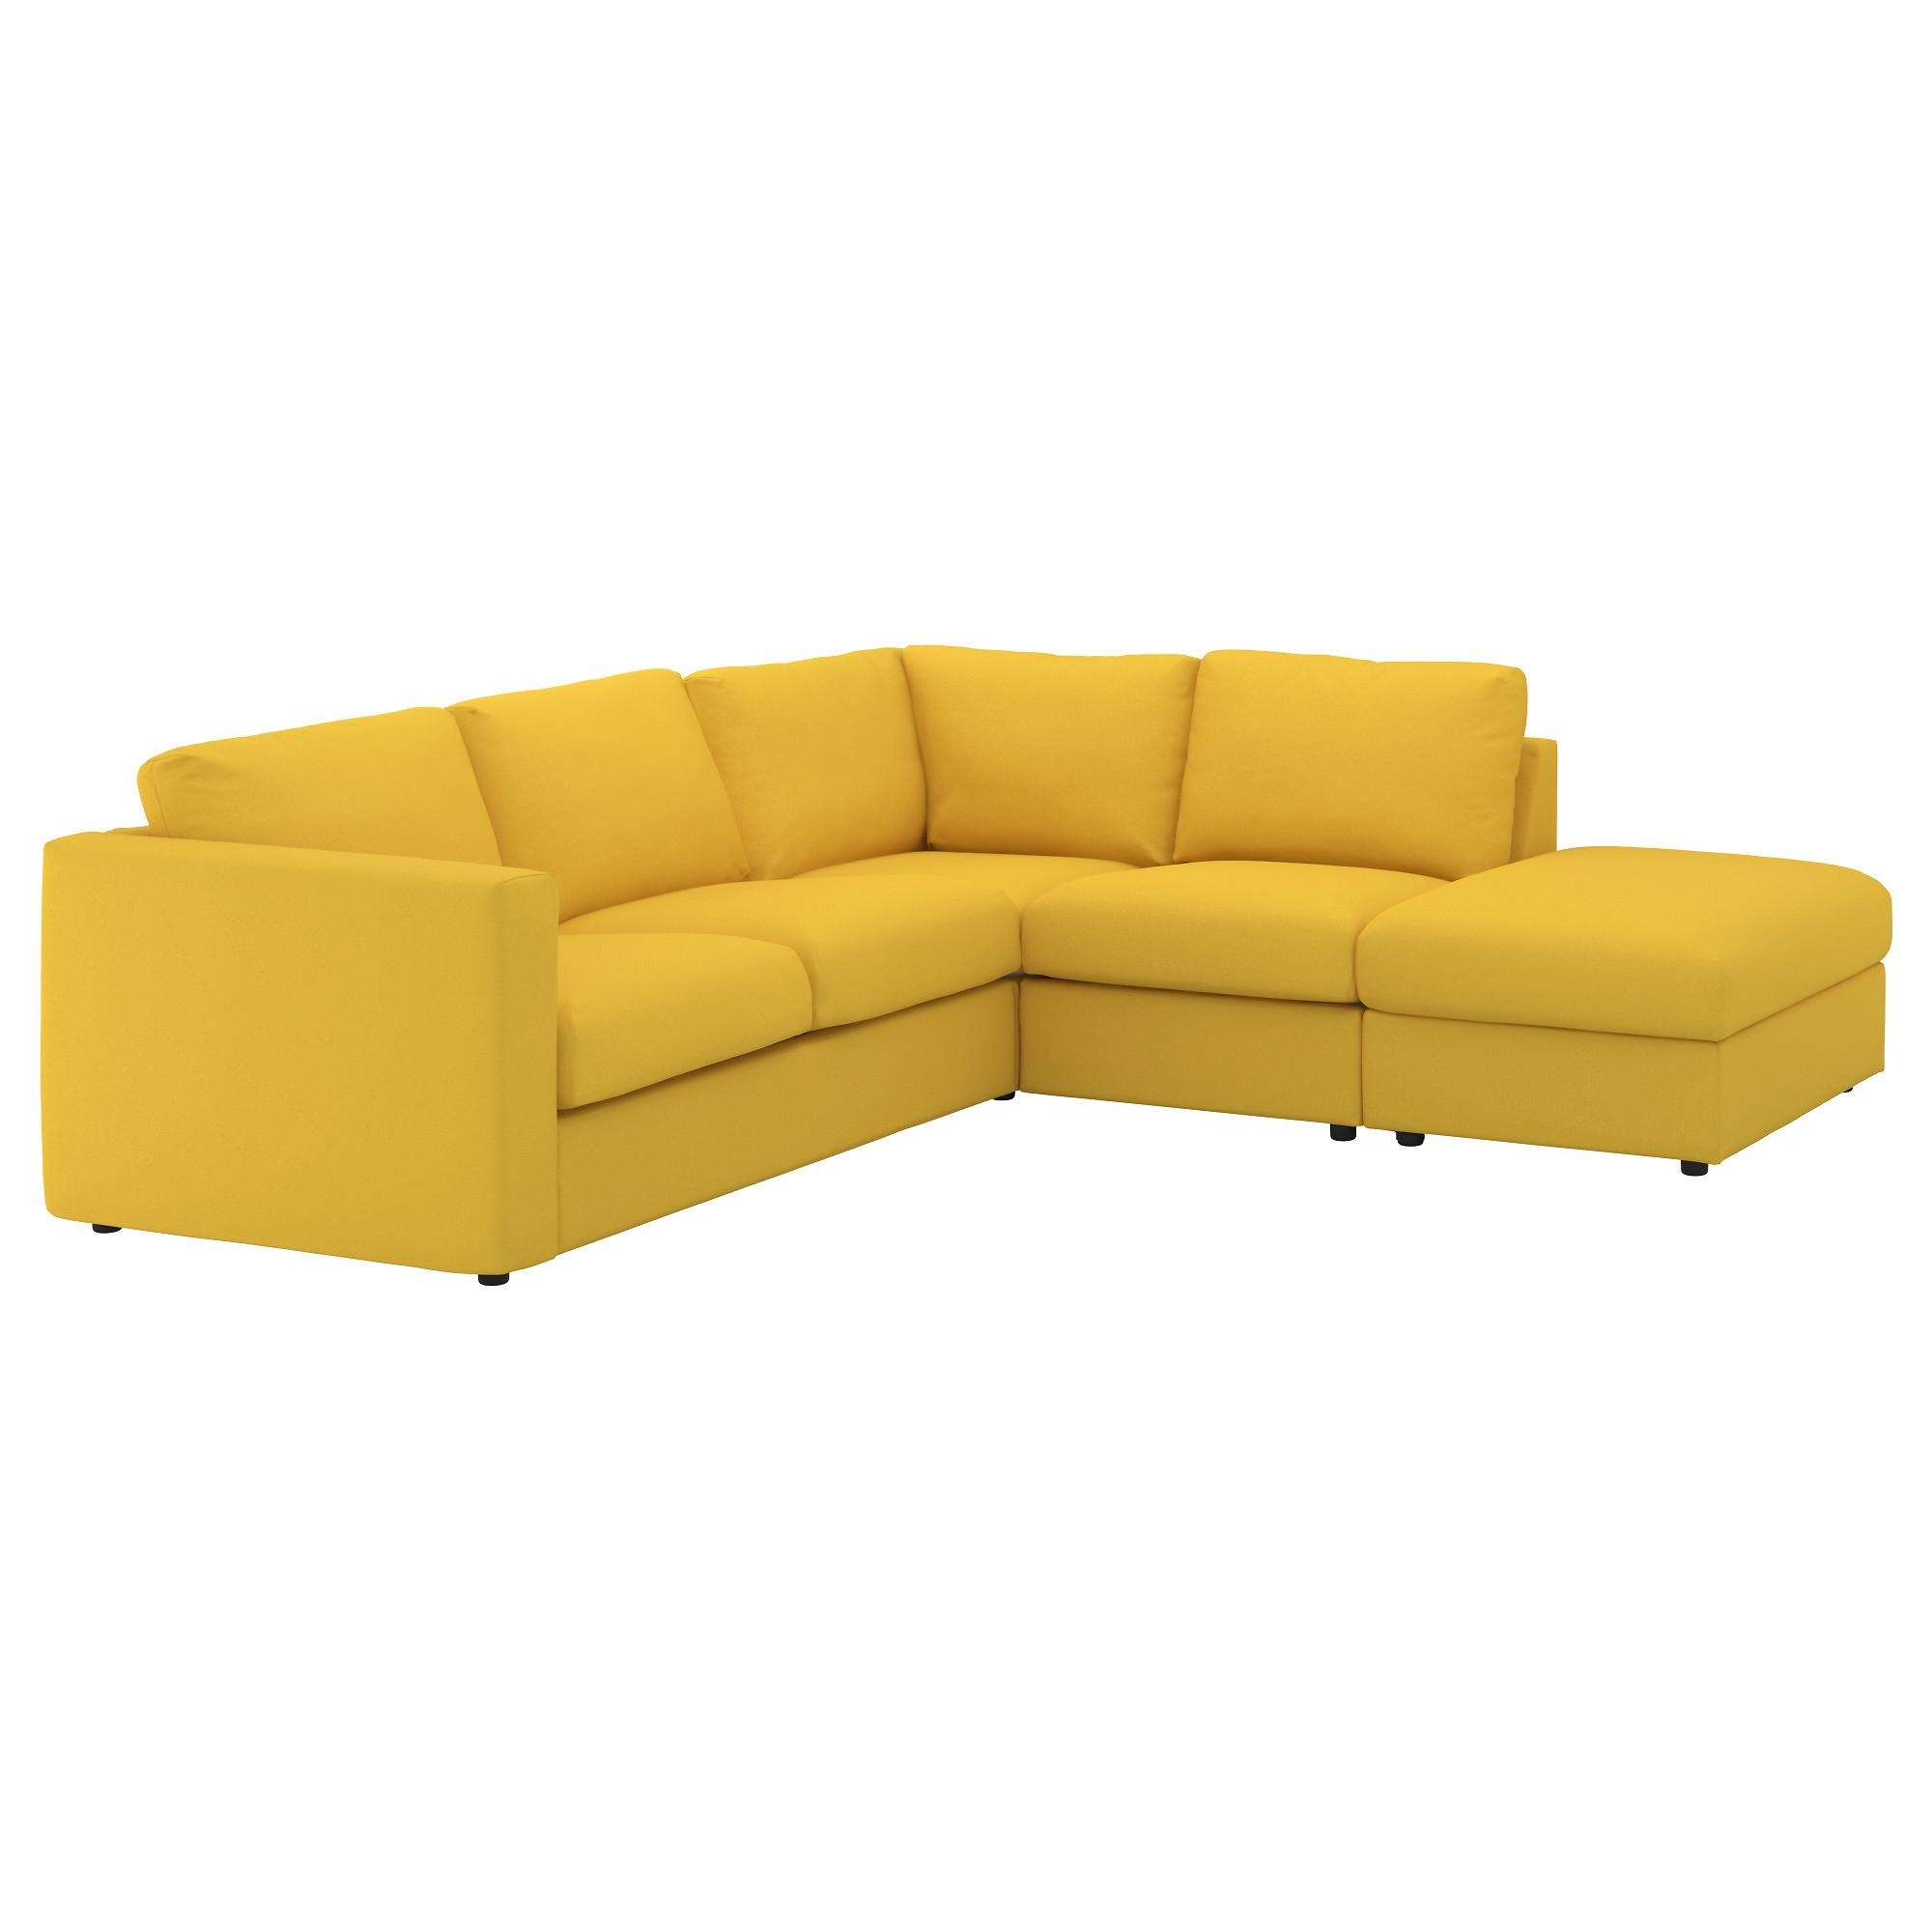 Vimle Corner Sofa, 4 Seat With Open End/gräsbo Golden Yellow – Ikea Within Corner Sofas (Image 20 of 20)